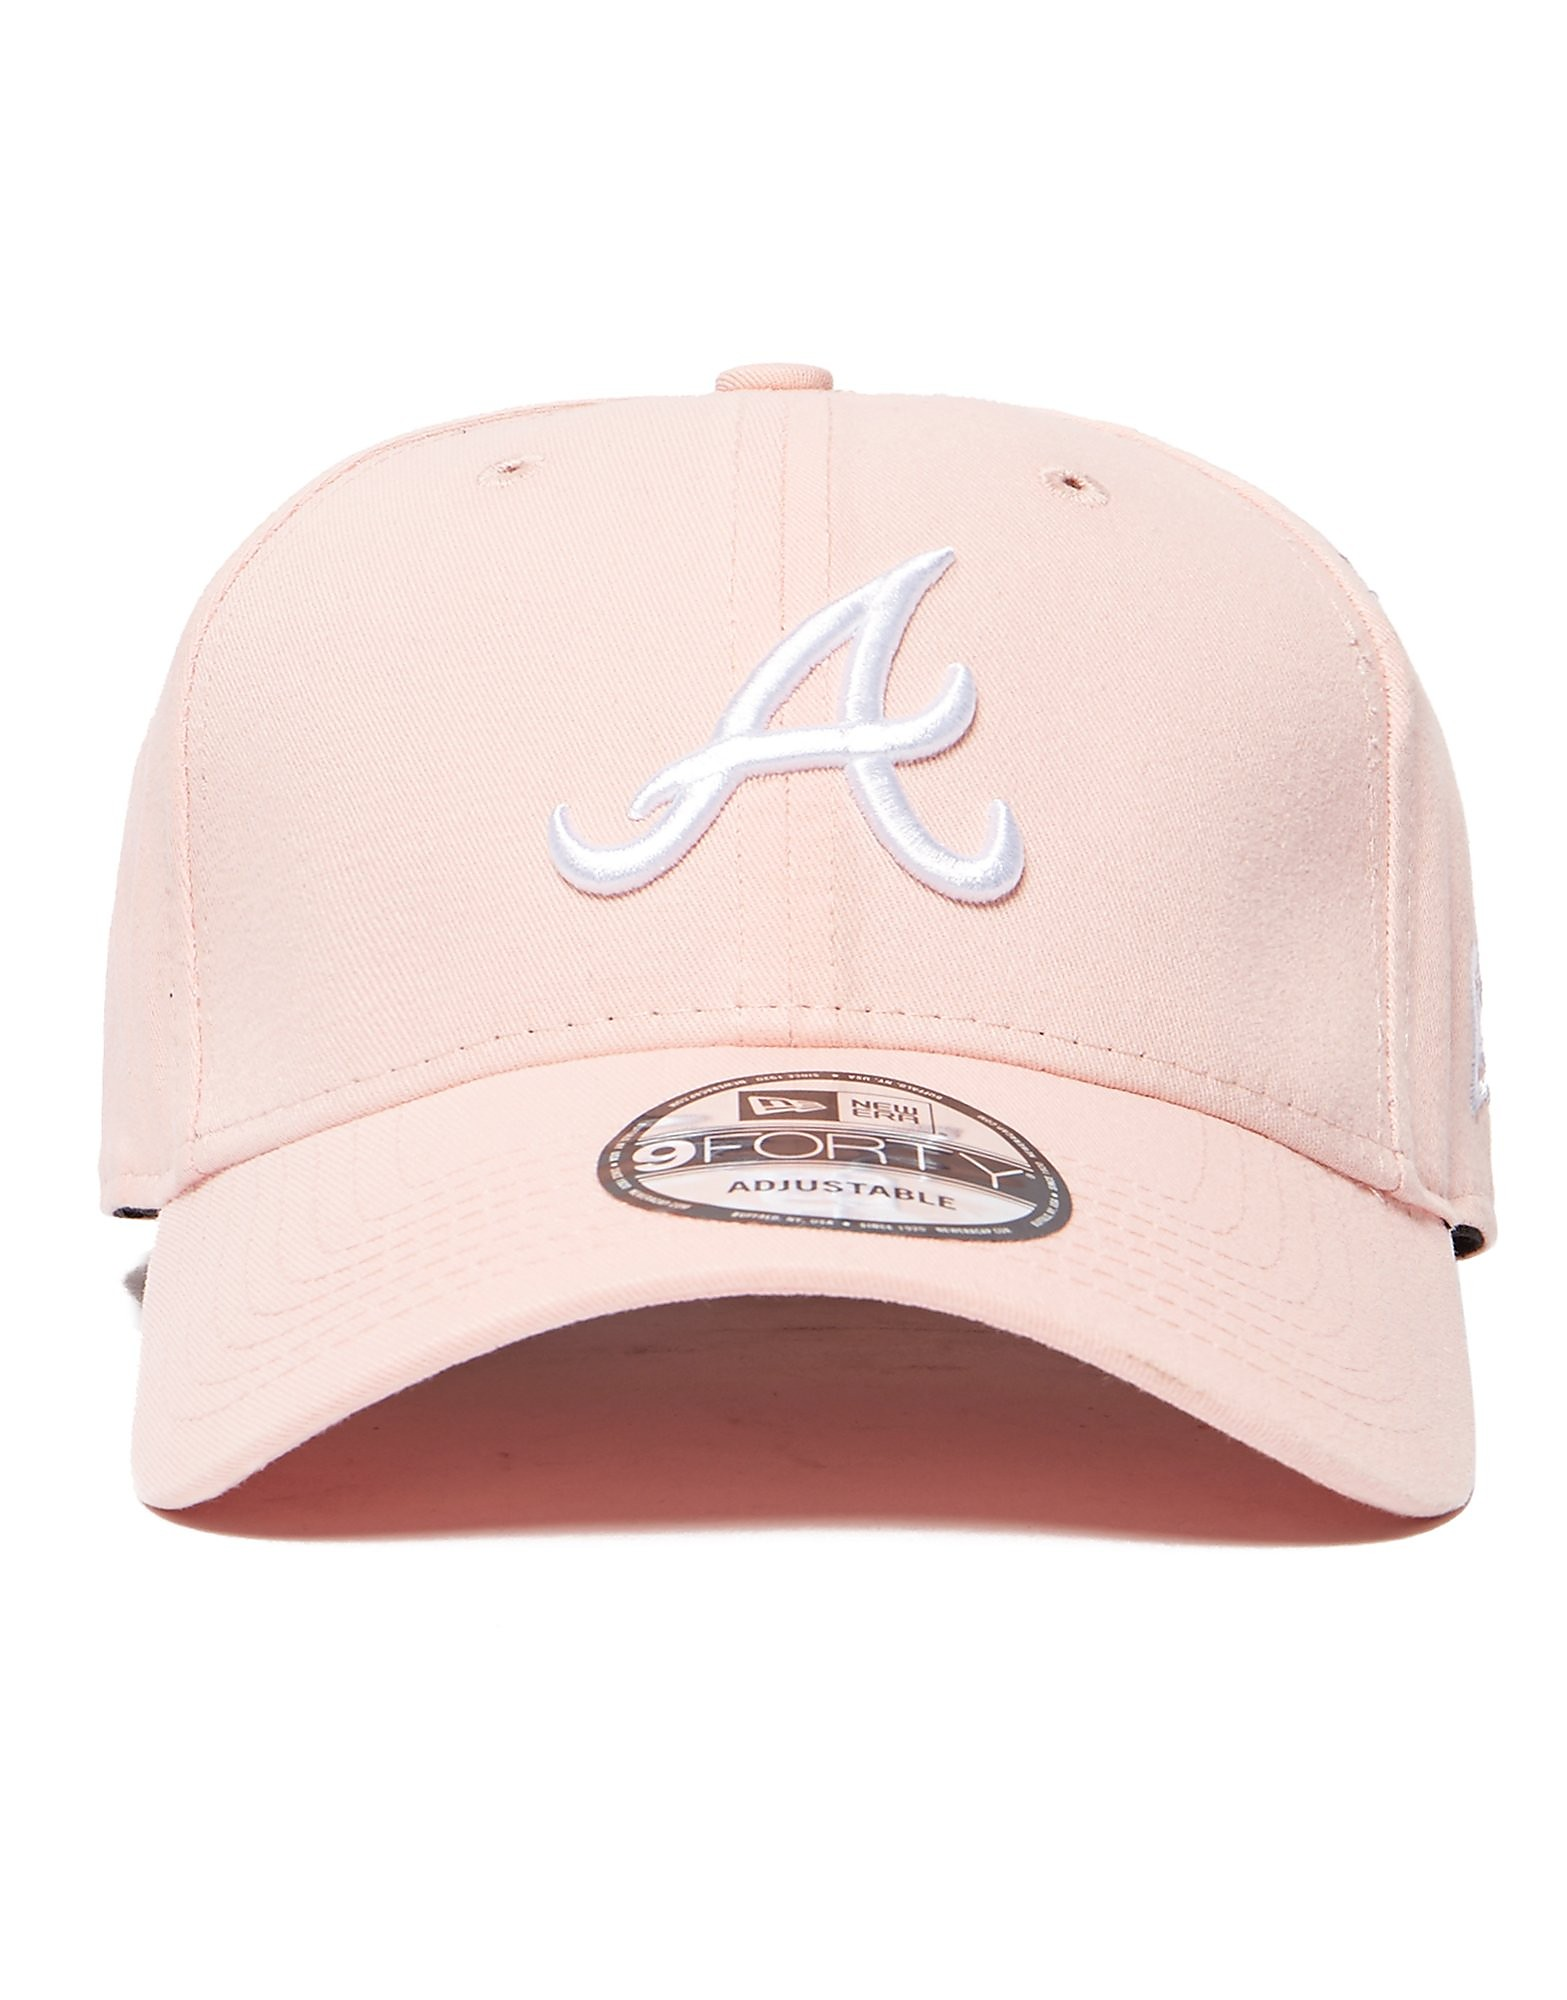 New Era 9Forty Braves Baseball Cap